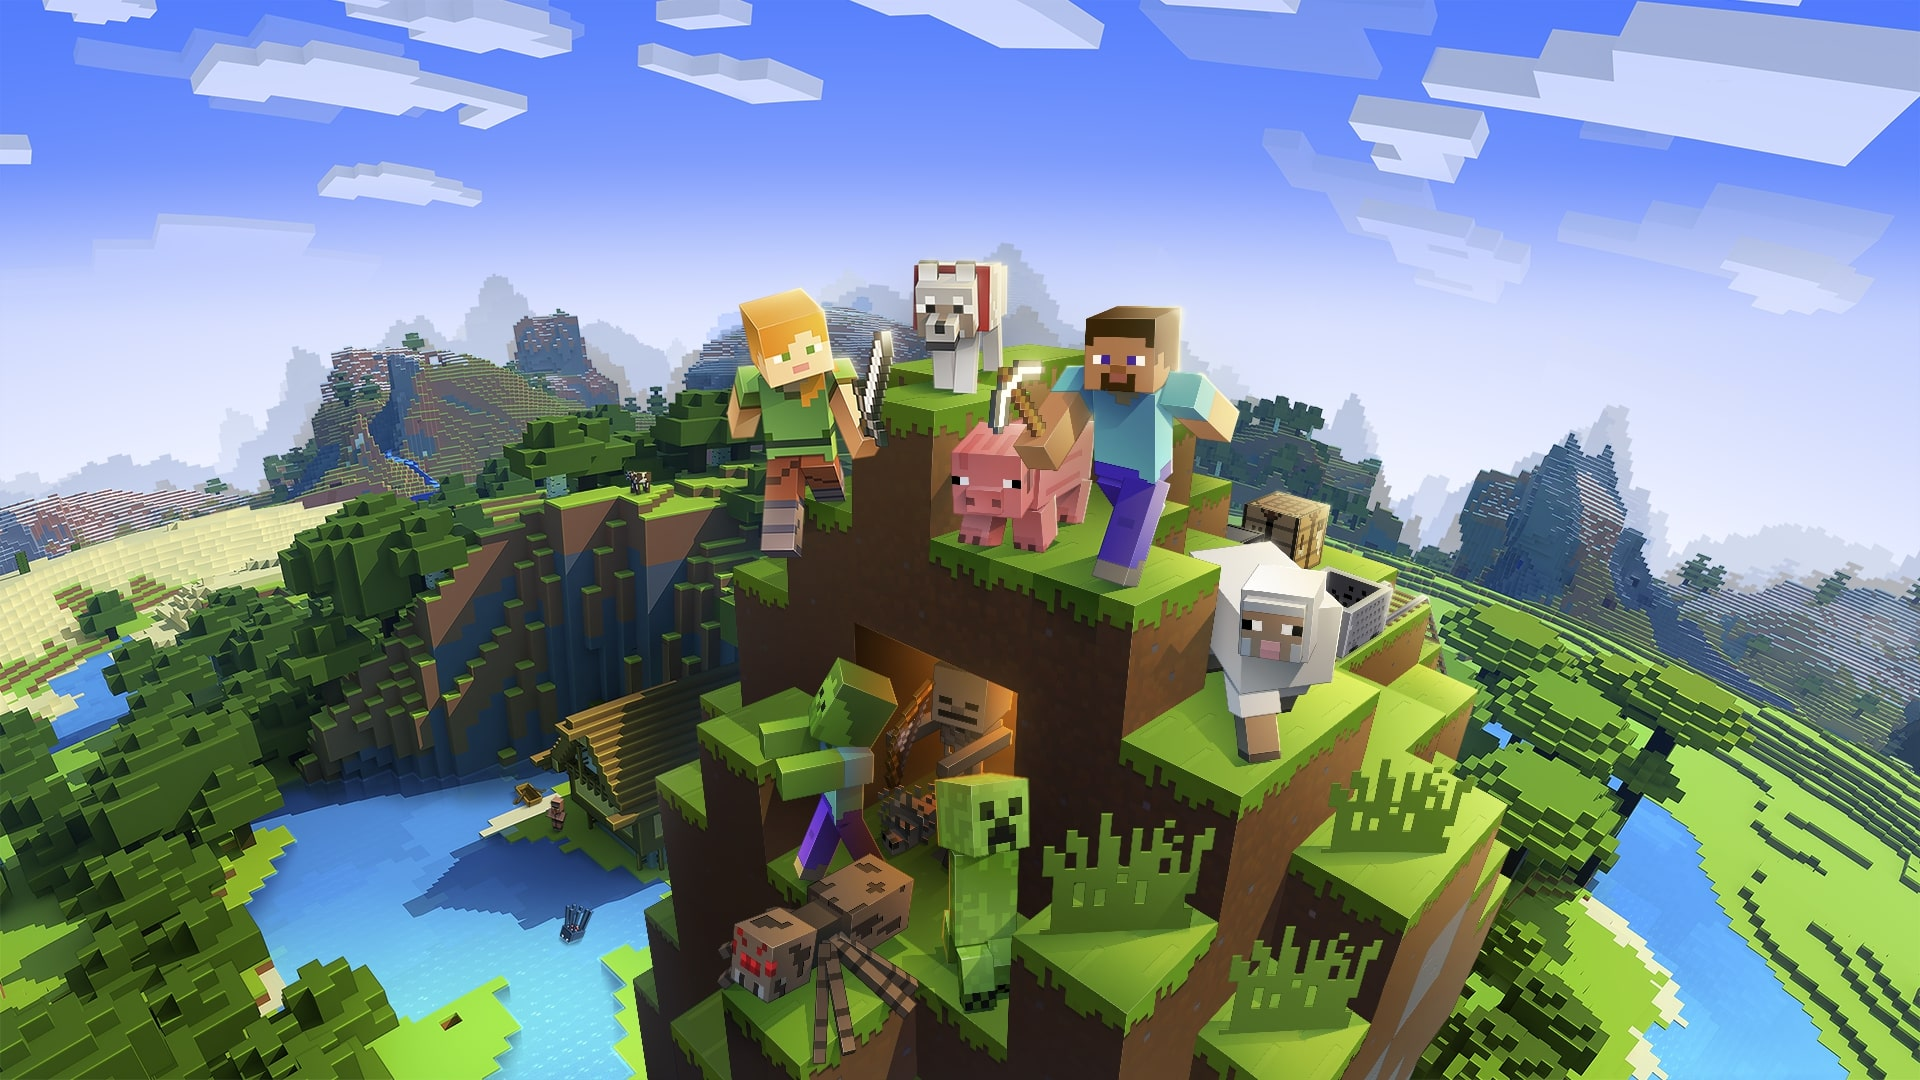 Minecraft Java Edition Snapshot 21w15a Goat Changes Bug Fixes And More Player One